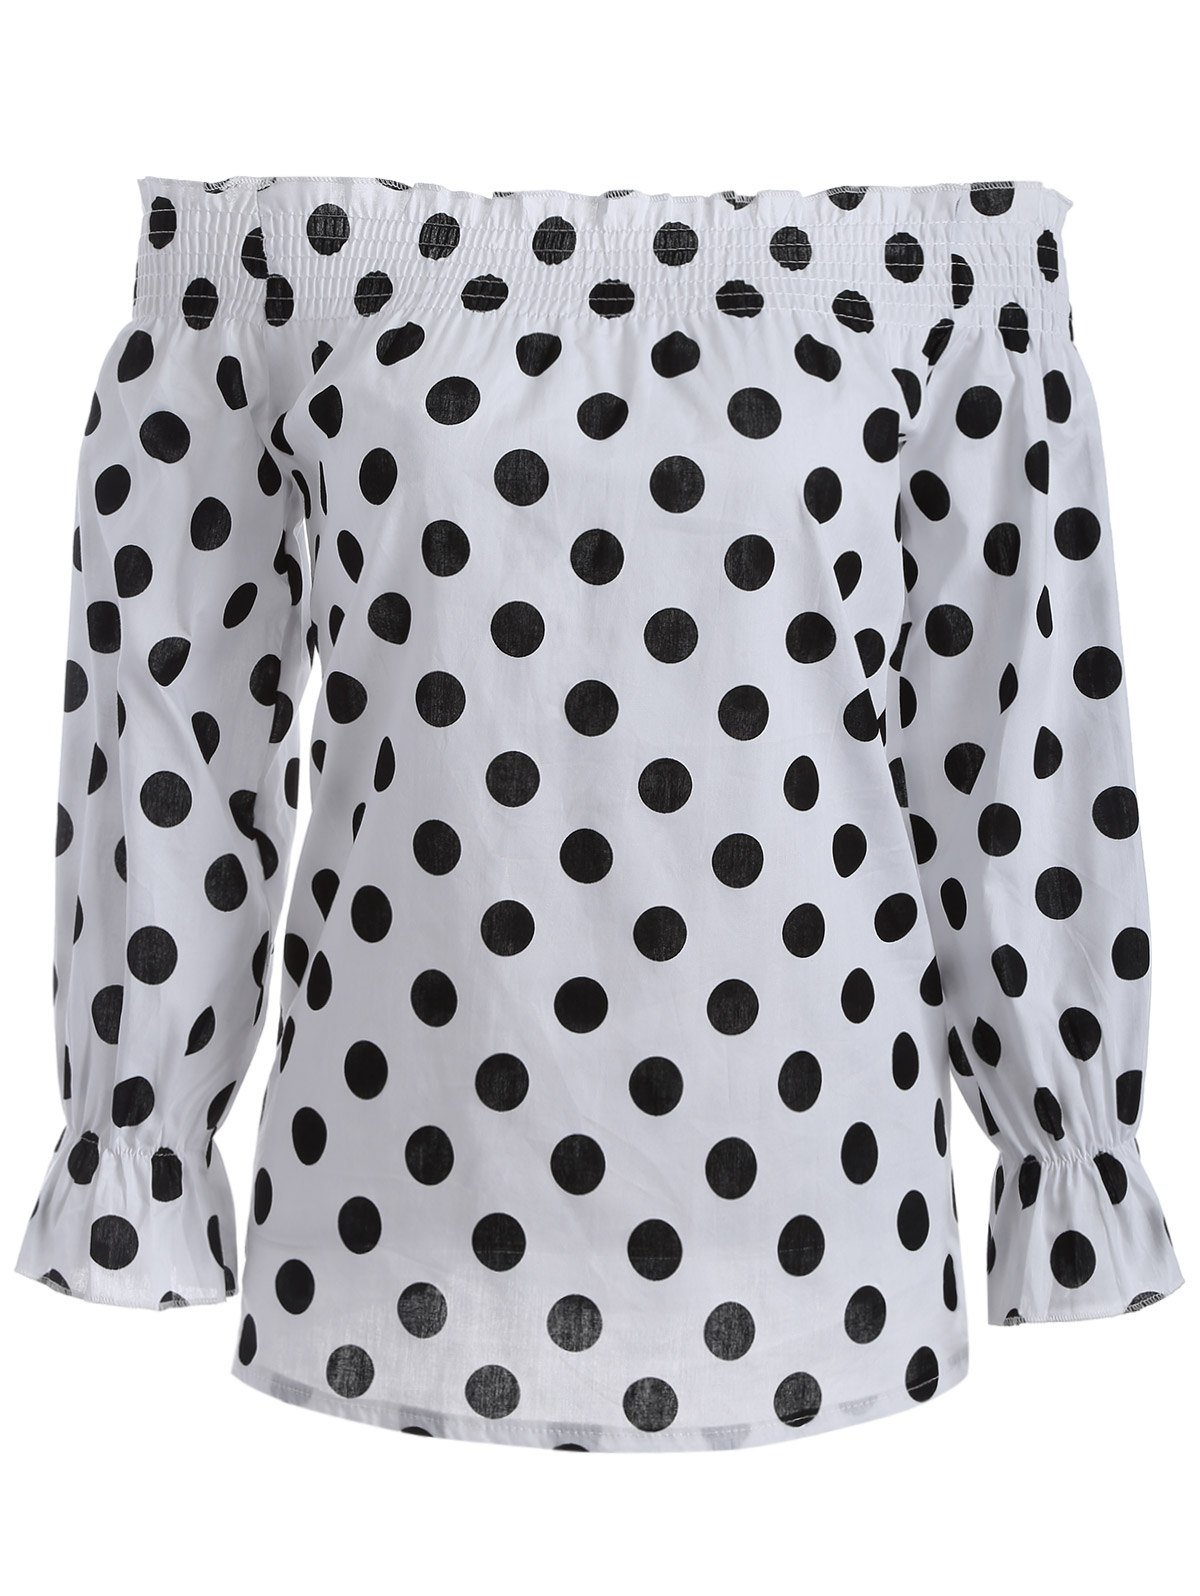 Off-The-Shoulder Polka Dot Blouse - WHITE/BLACK L